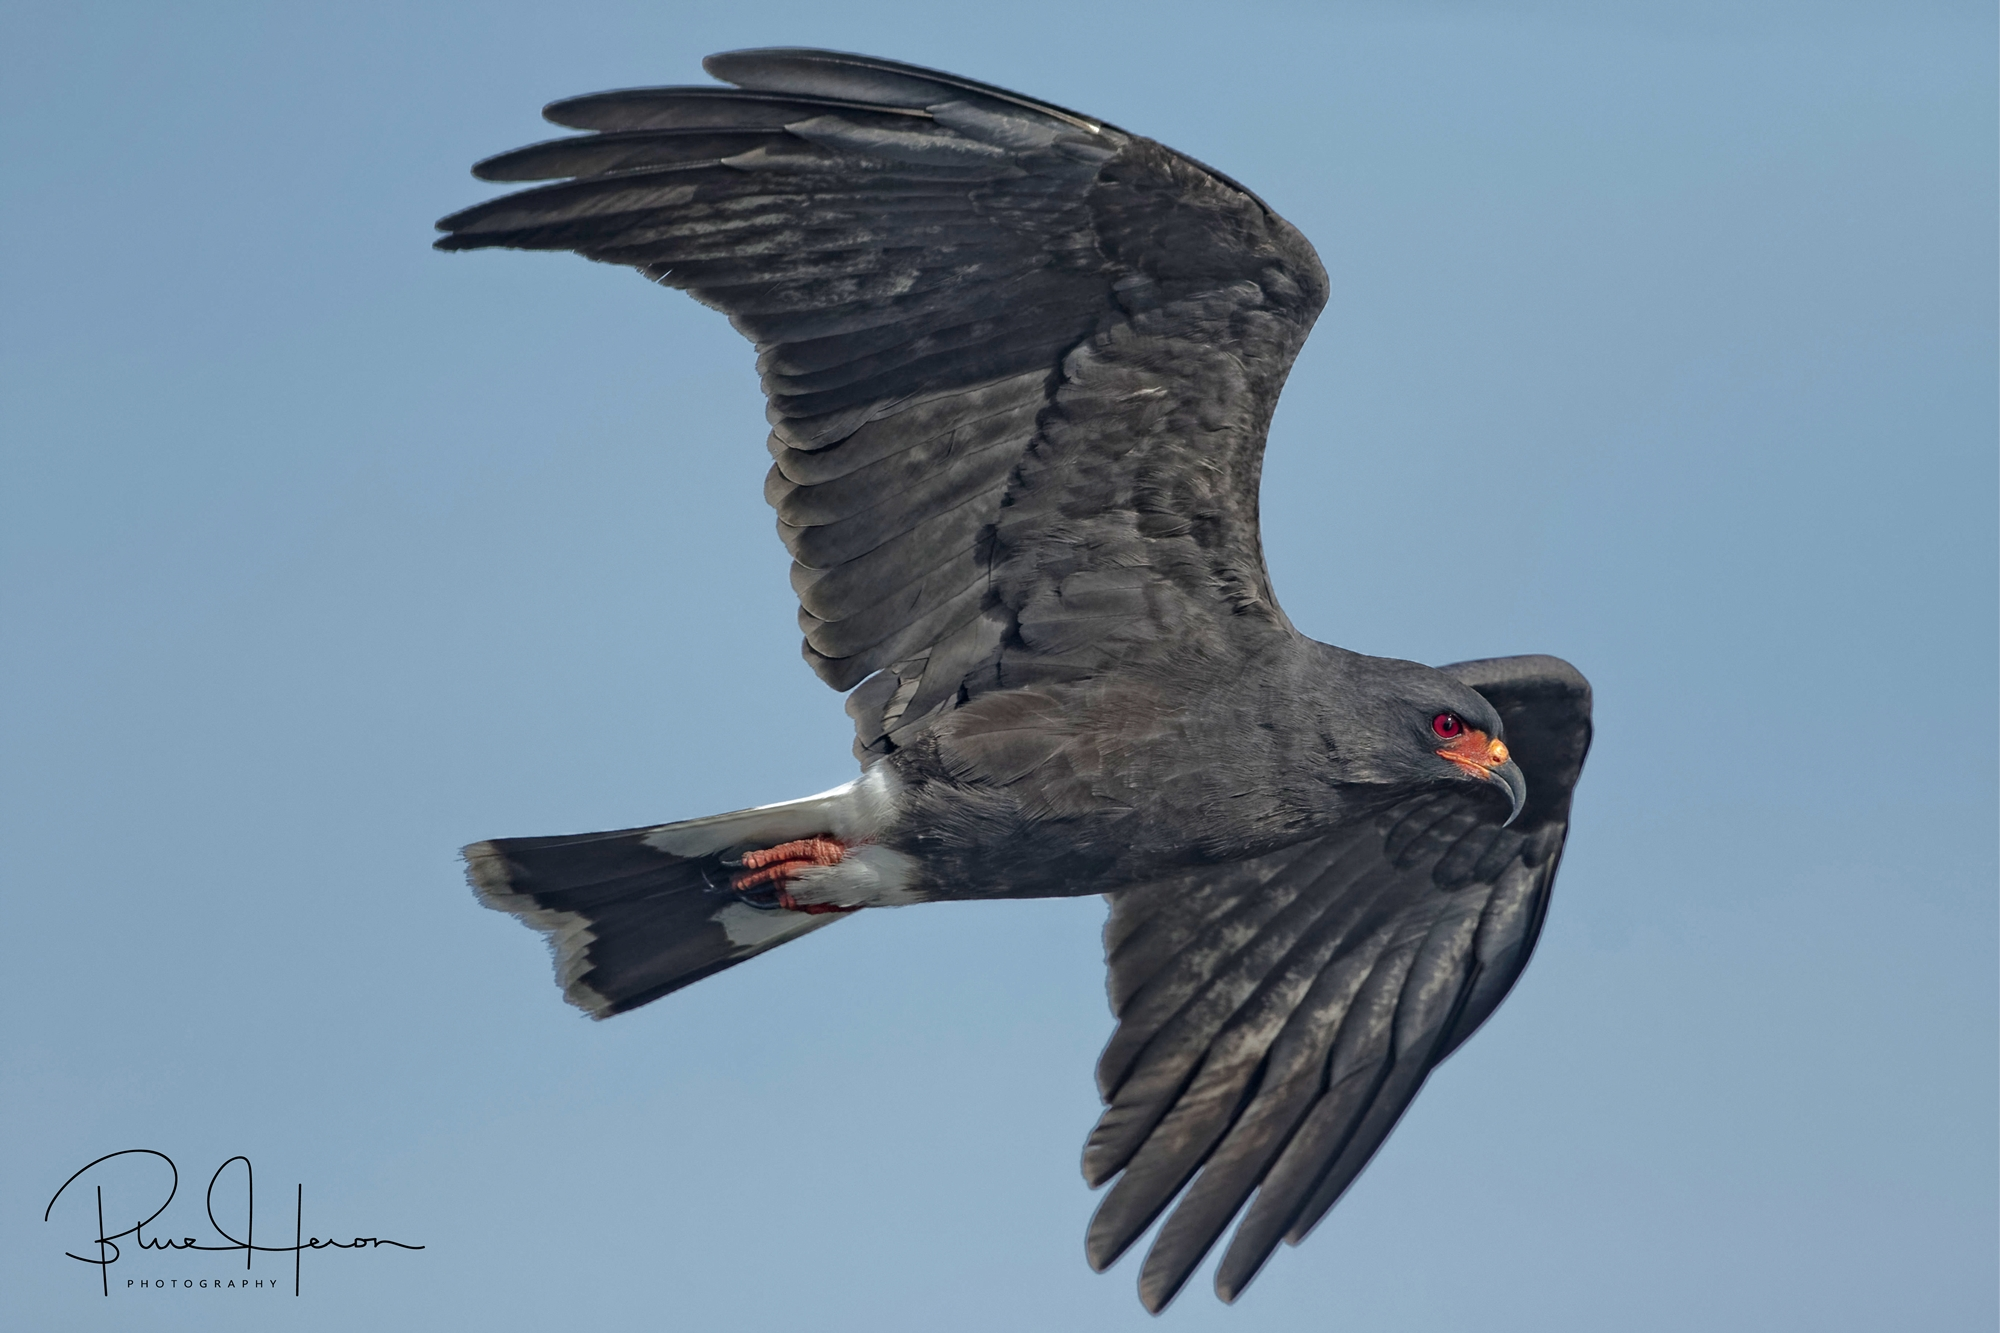 The male Snail Kite is dark grey-to-brown with orange feet and facial area. It has a white stripe on tail and back.